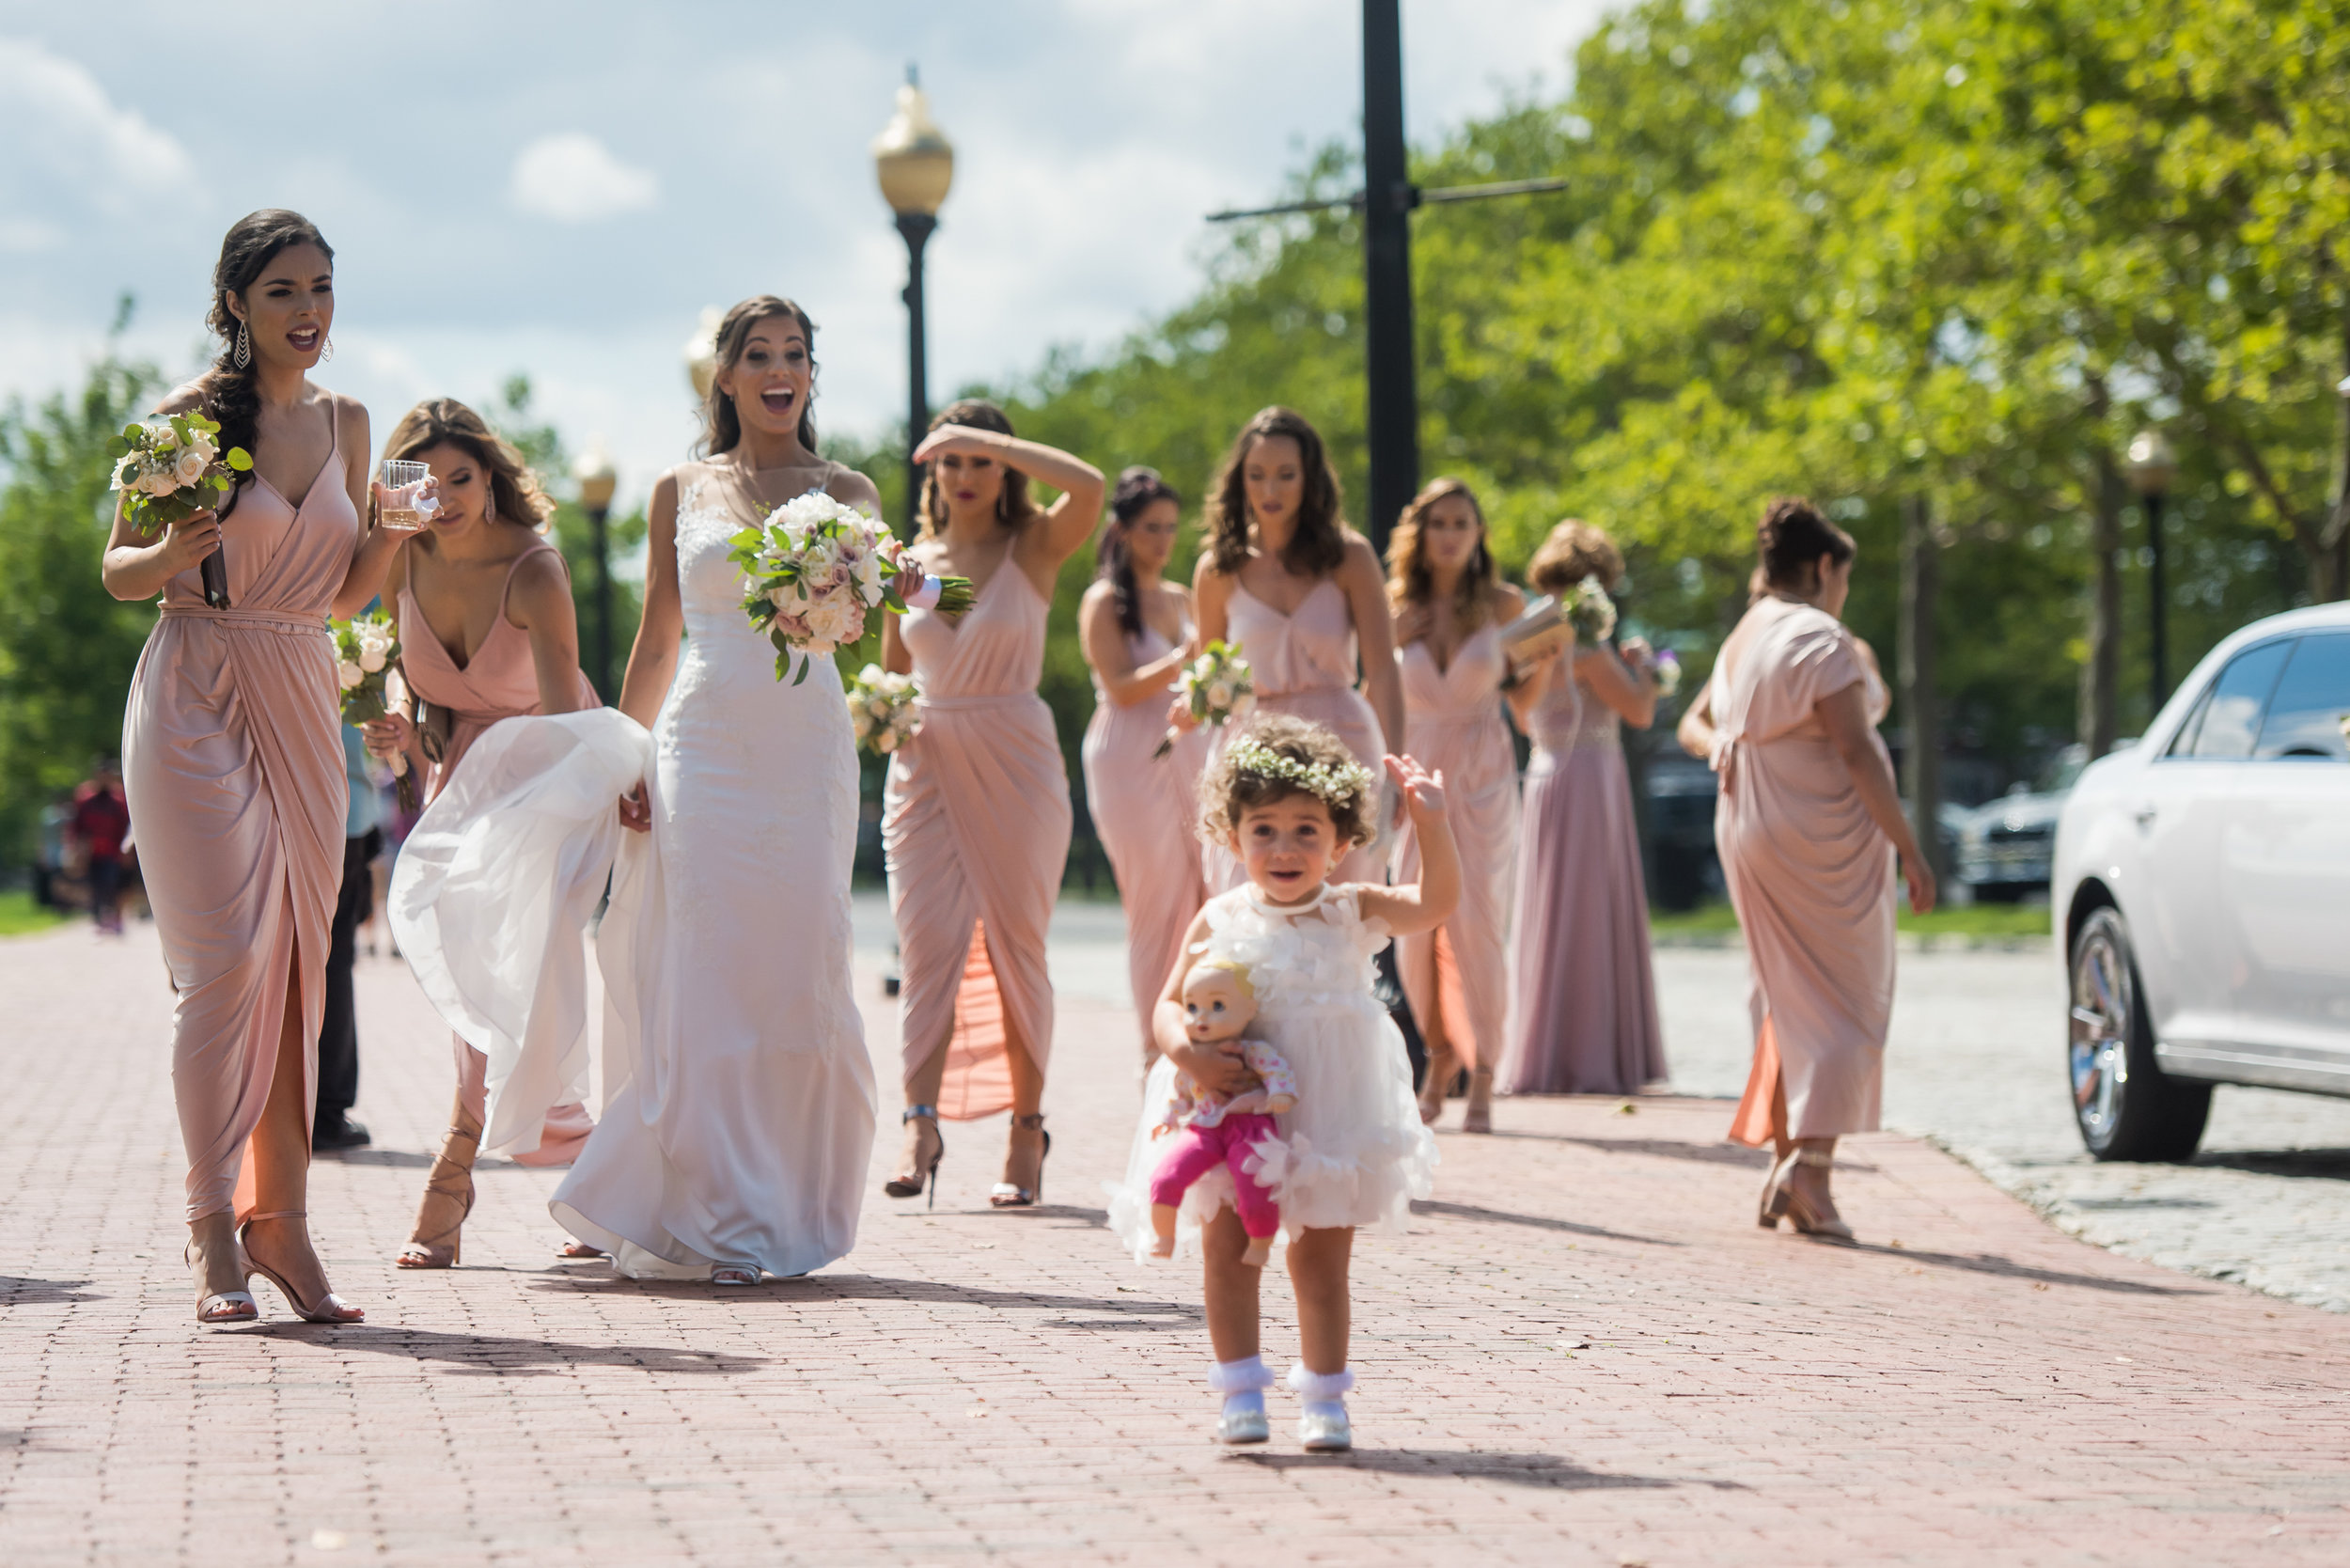 Stefy Hilmer Photography-bride and bridesmaid on their way to the formal portraits.jpg